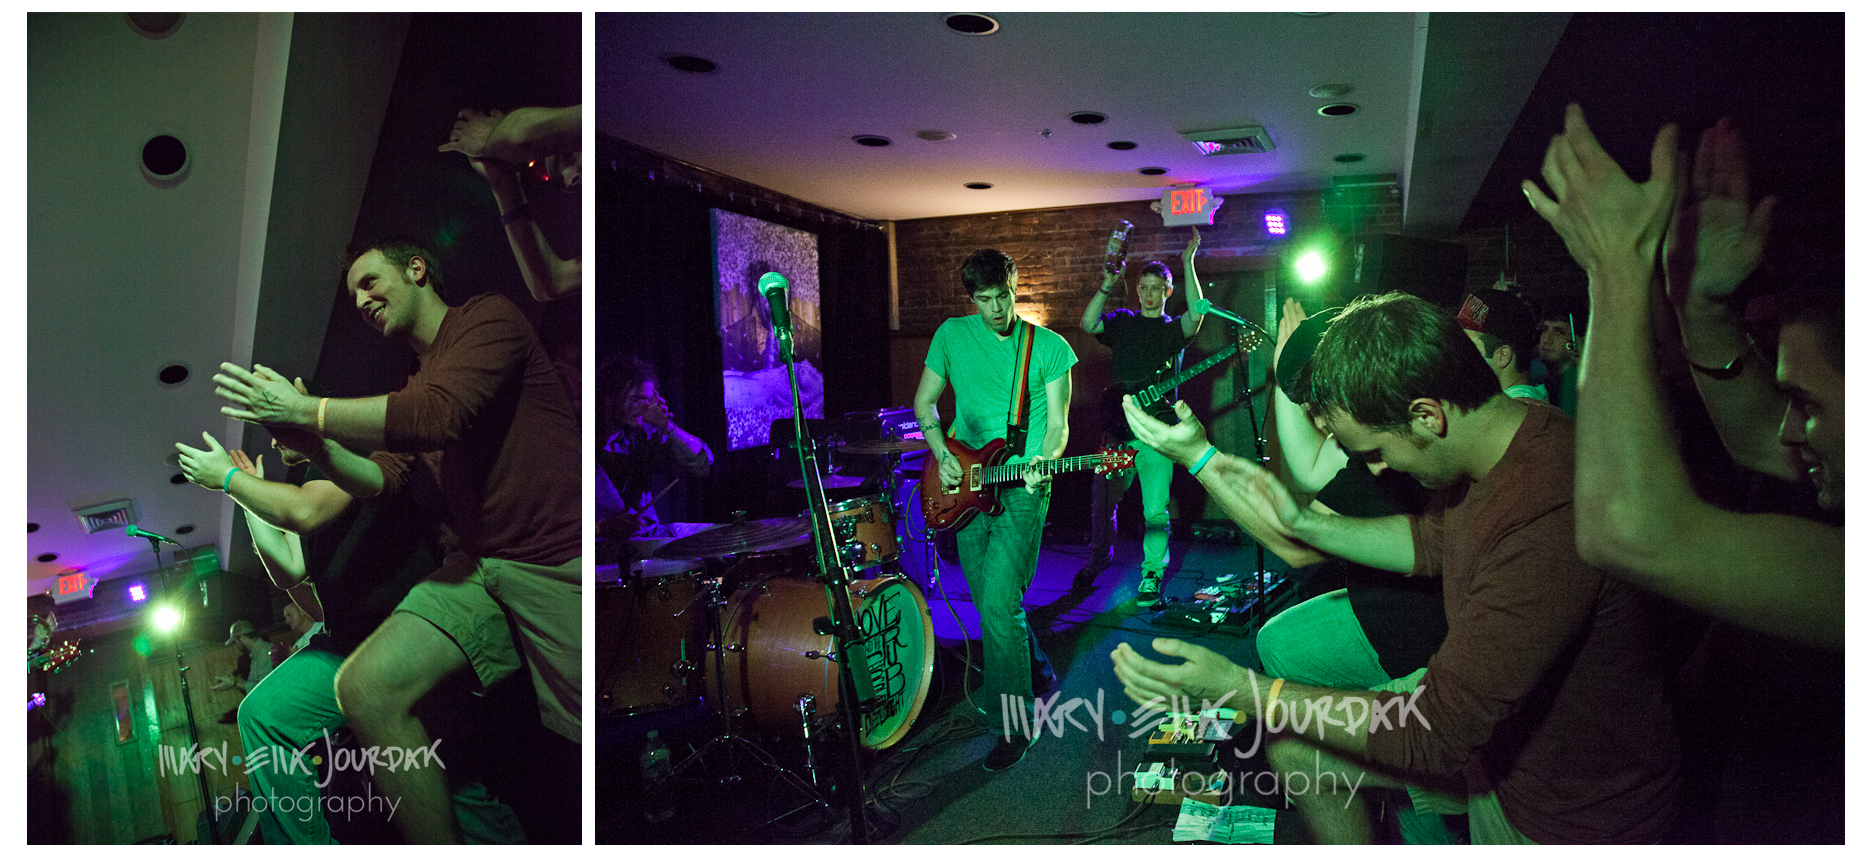 live music downtown historic annapolis maryland band photography photographer acoustic love rub and the chocolate delight portraitguitar photographer wedding photographer family photographer infant photographer maternity photographer engagement photographer vow renewal